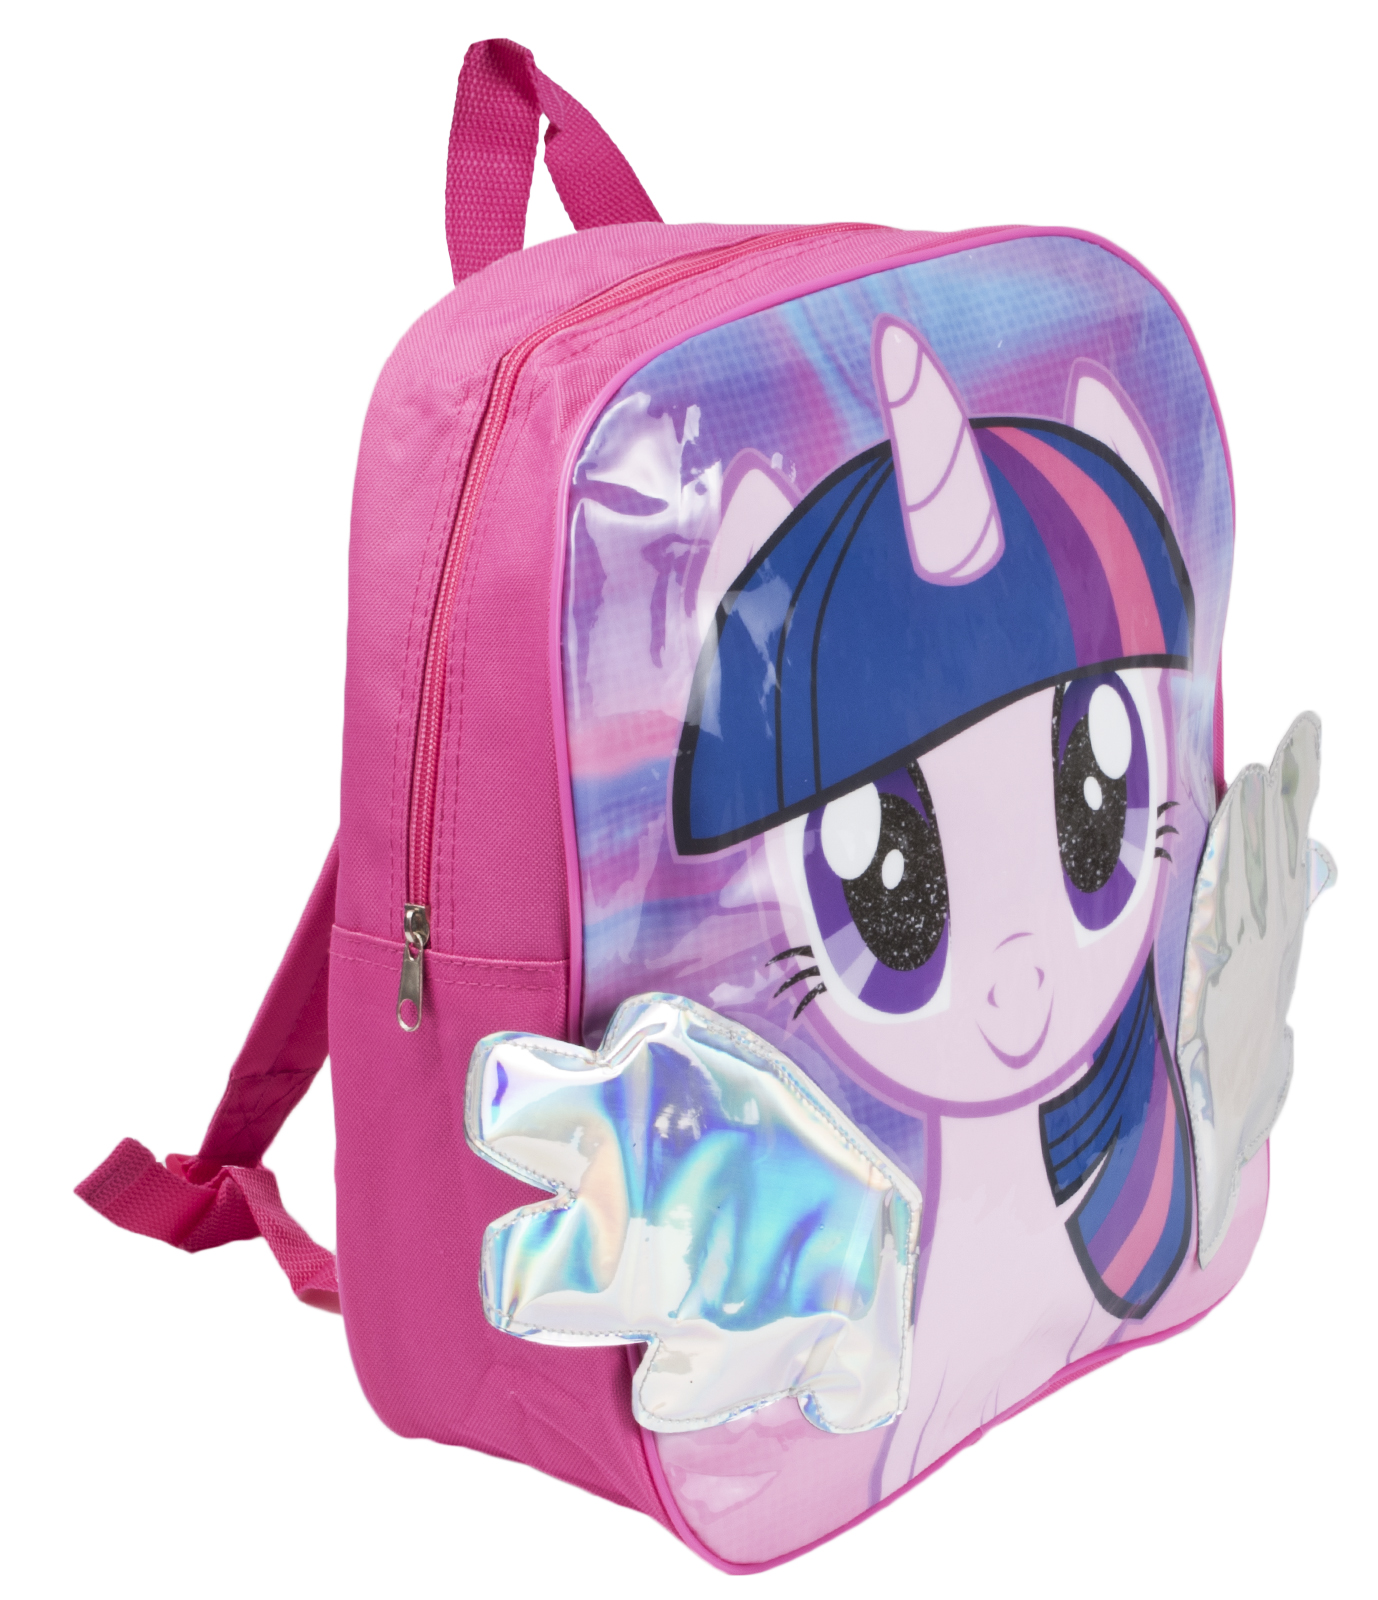 fde764bc32 Girls My Little Pony 3D Backpack Rainbow Dash Kids School Lunch Book Bag  Nursery